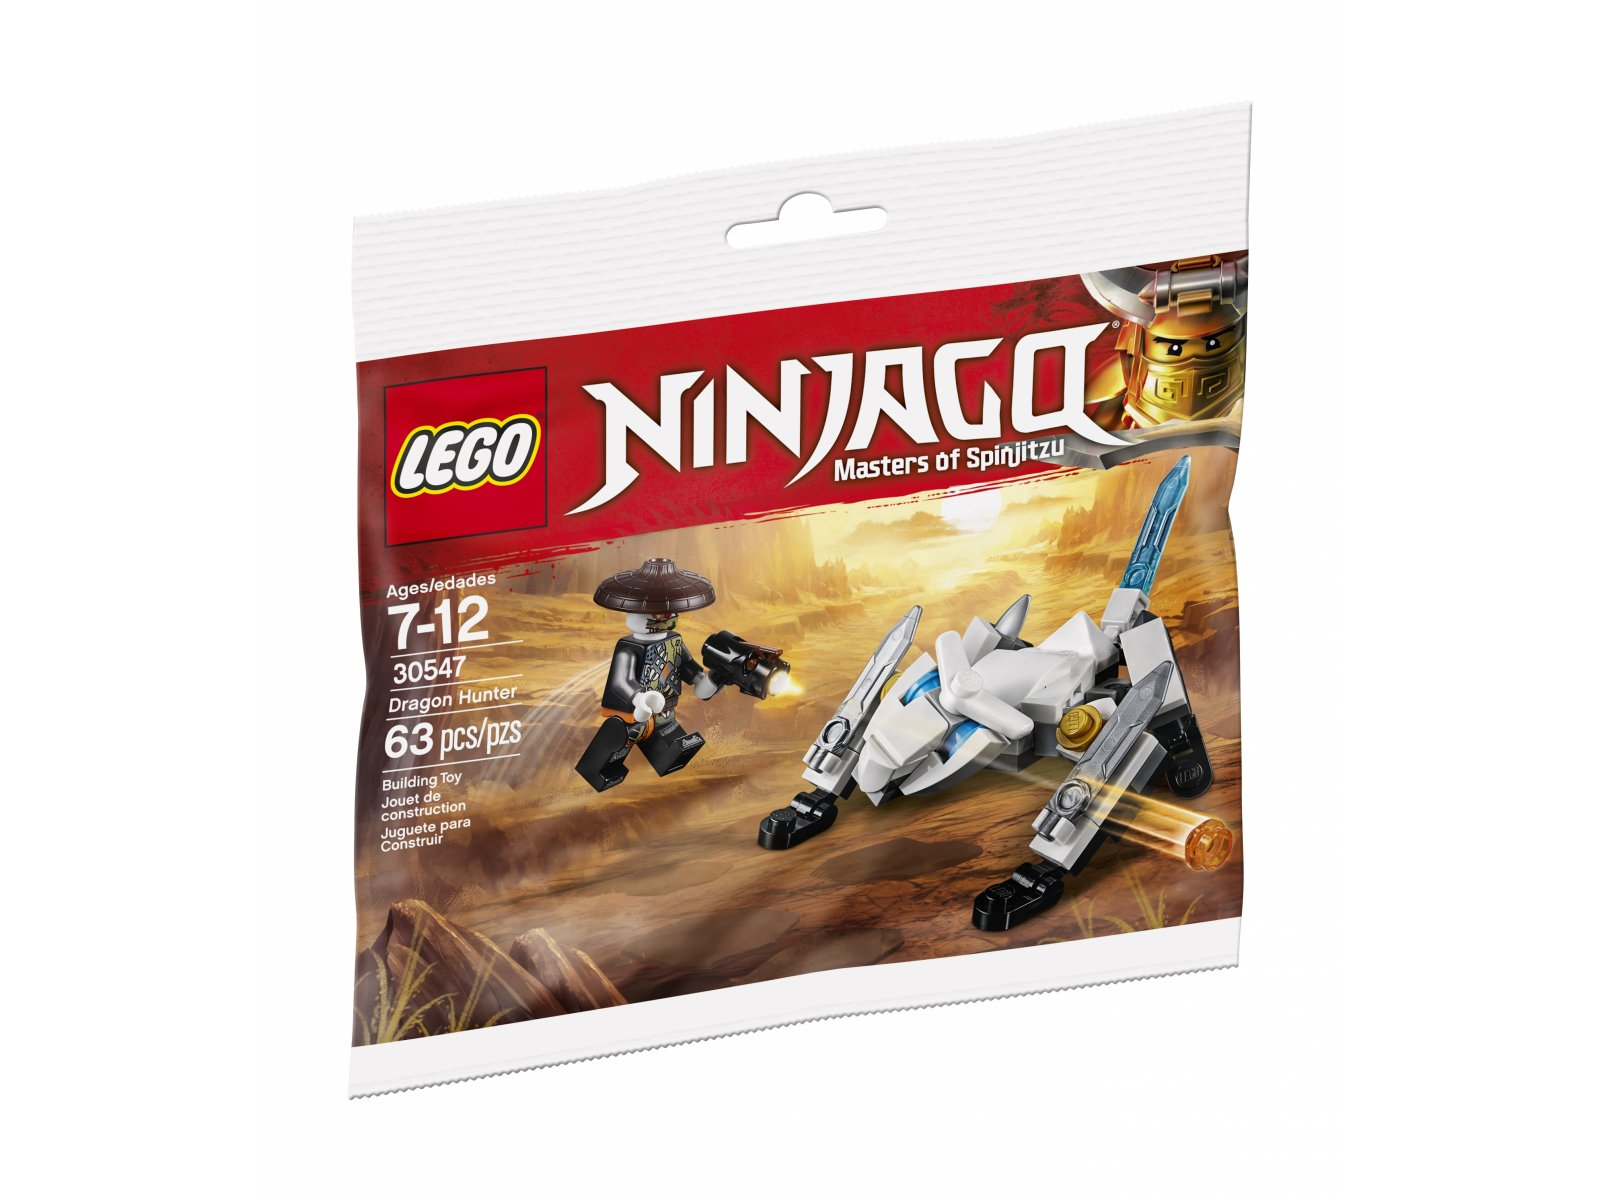 LEGO 30547 Ninjago® Dragon Hunter